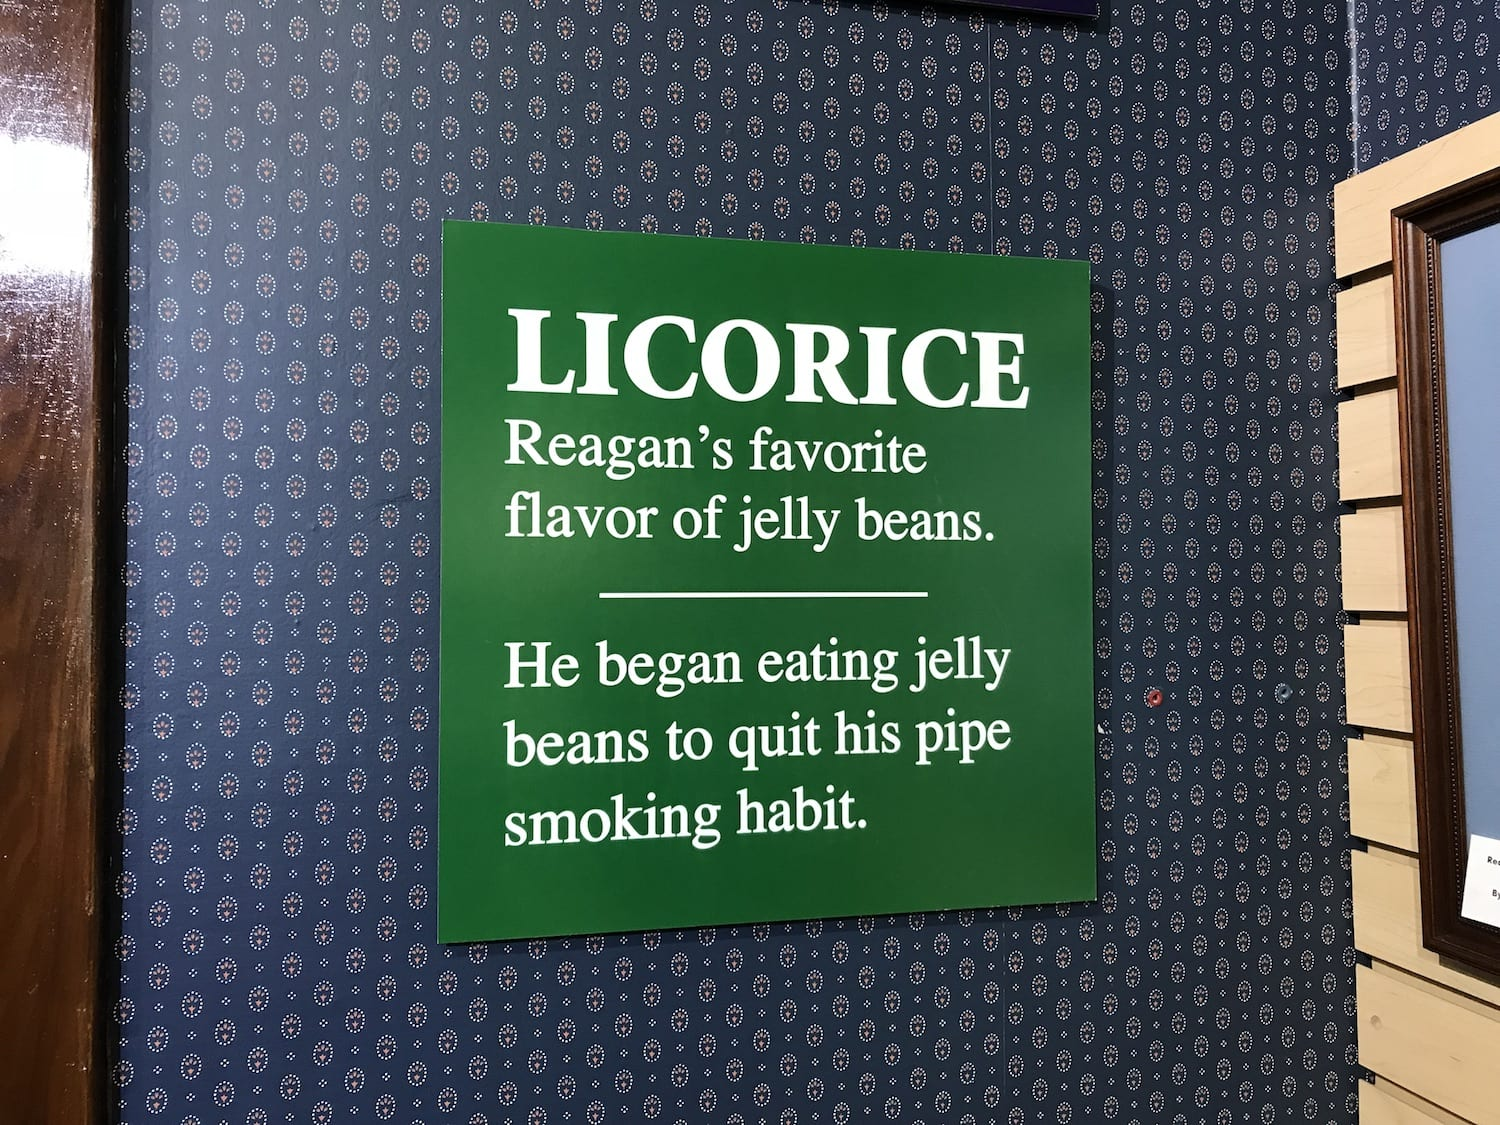 Ronald Reagan's favorite jelly belly was licorice!